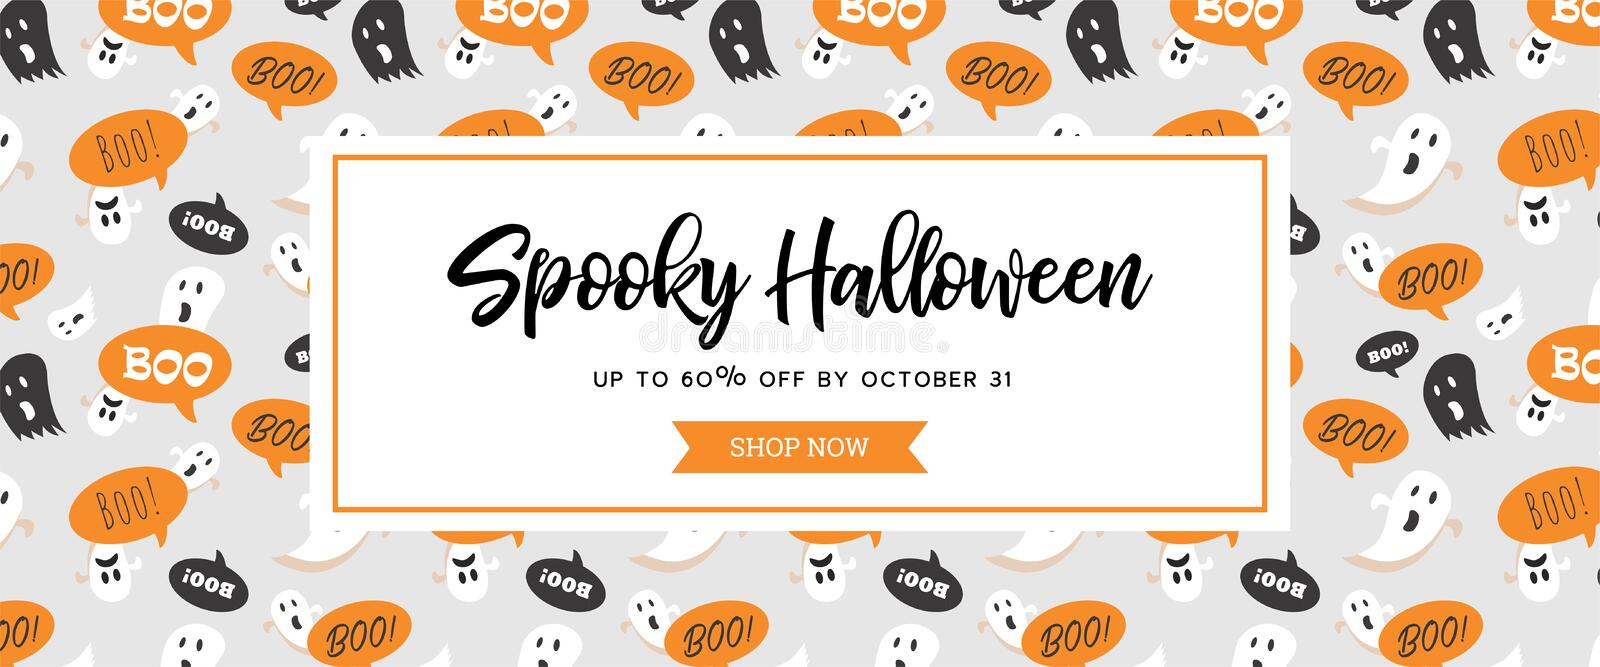 Website spooky header or banner with Halloween scary ghosts. Great for banner, voucher, offer, coupon, holiday sale. stock illustration